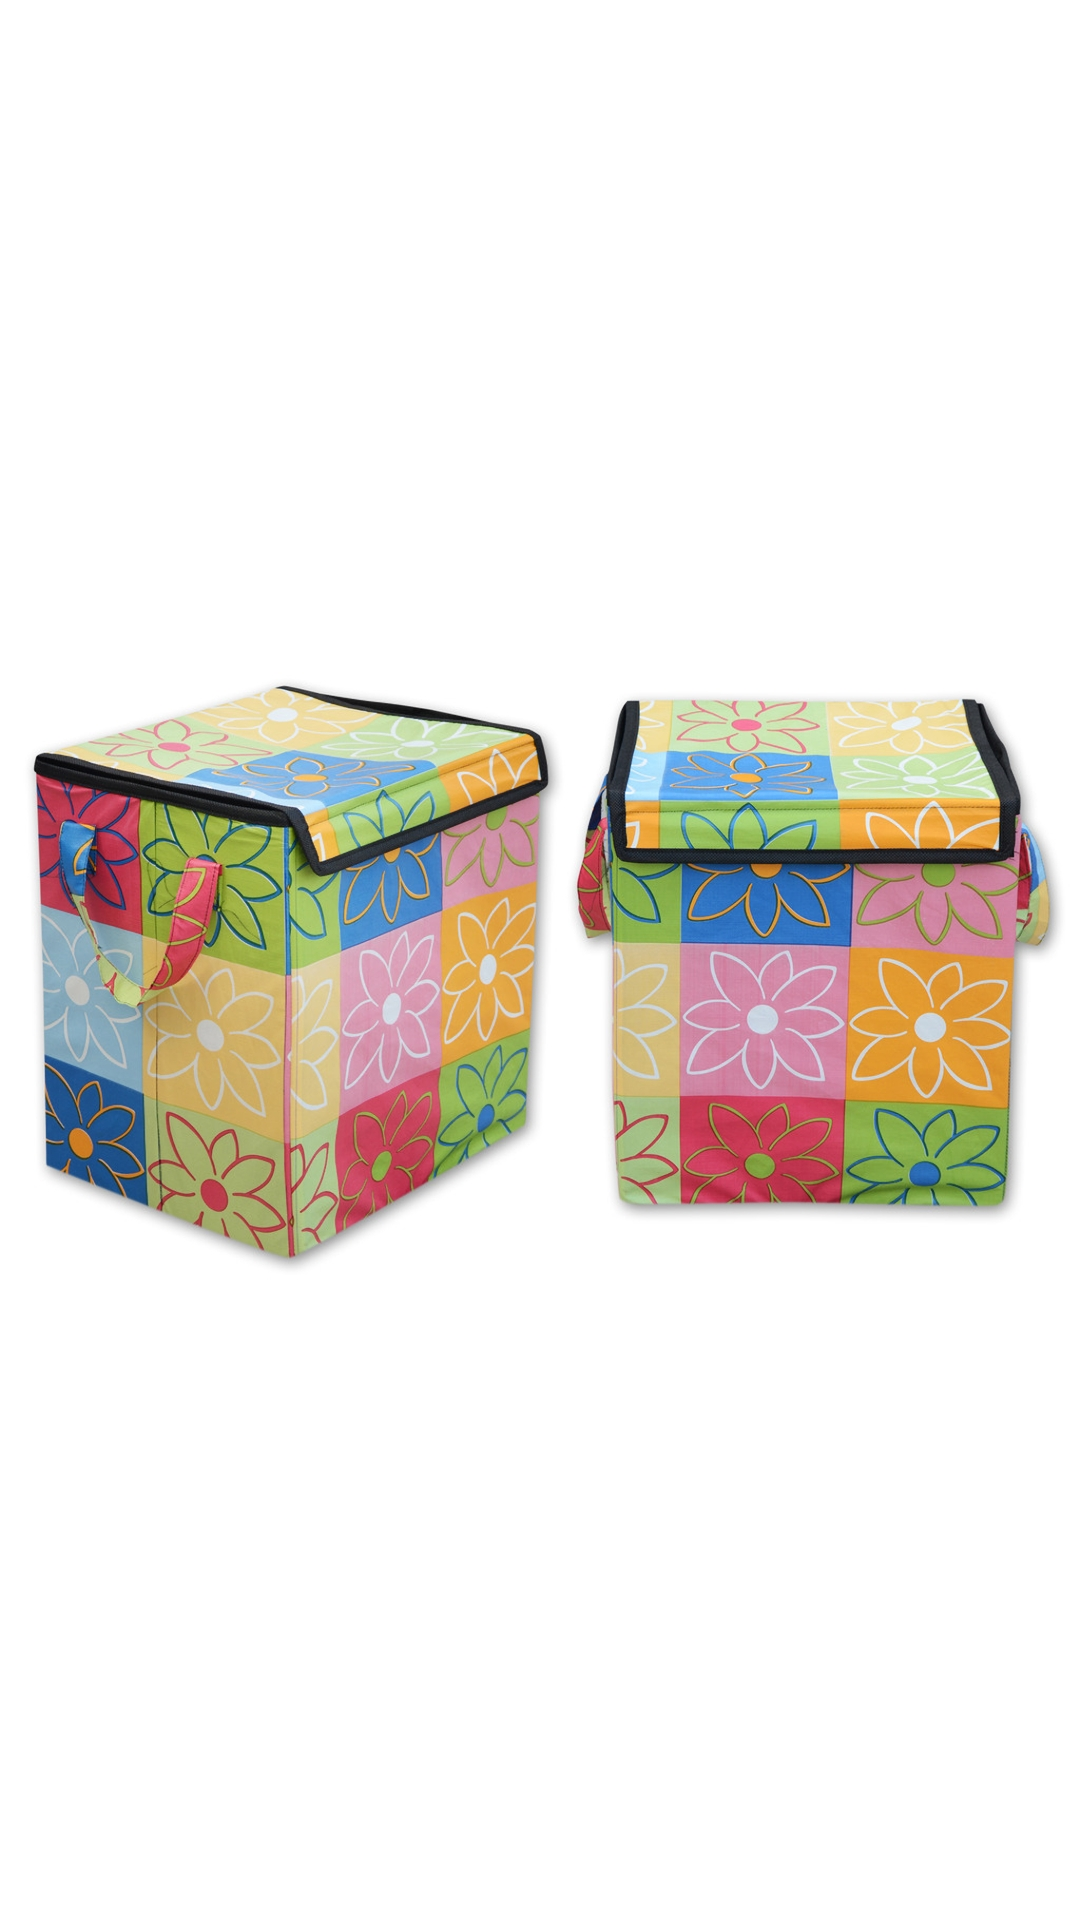 Super India Waterproof Foldable Washing Clothes Laundry Basket Bag H&er Bin Storage Box With Closing Head  sc 1 st  Paytm Mall & Buy Super India Waterproof Foldable Washing Clothes Laundry Basket ...